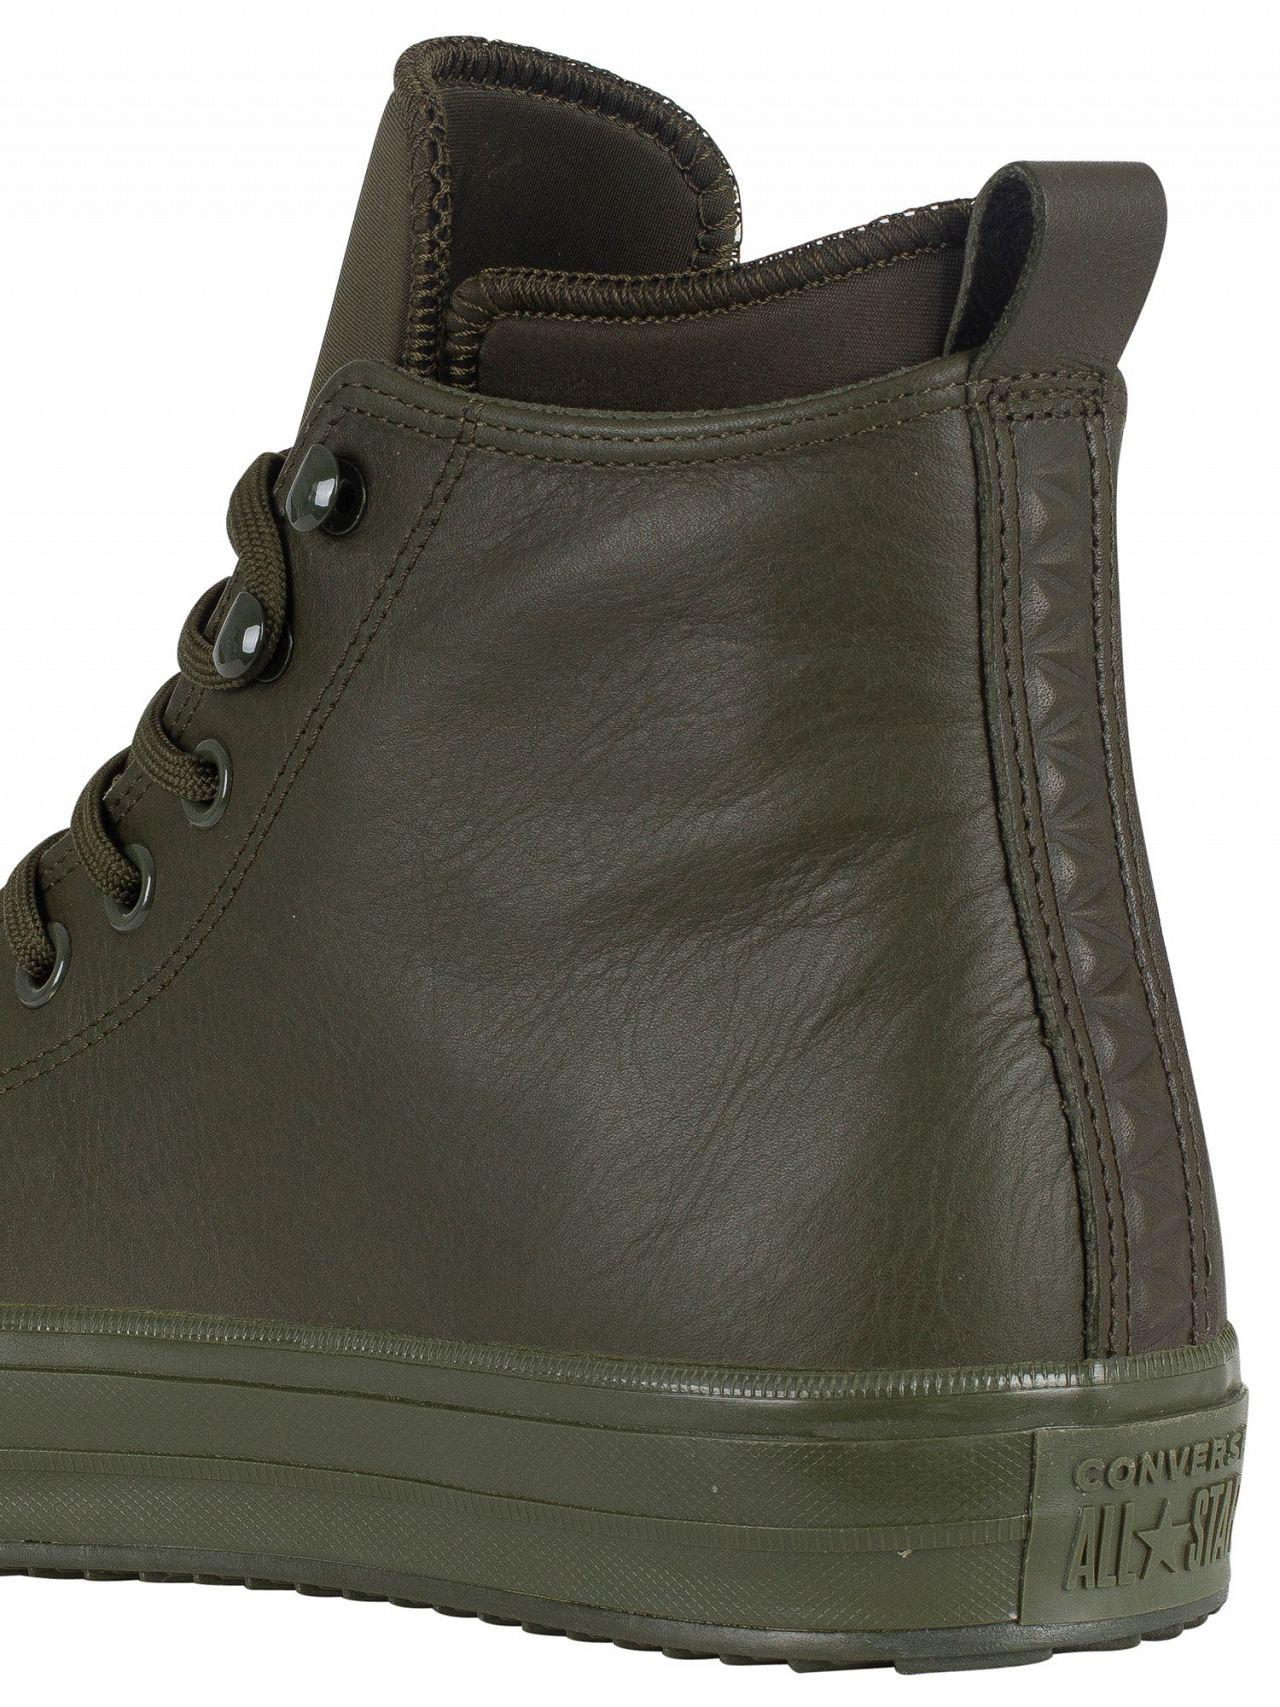 a7baebb959bf31 Lyst - Converse Utility Green Ct All Star Hi Wp Leather Boots in ...